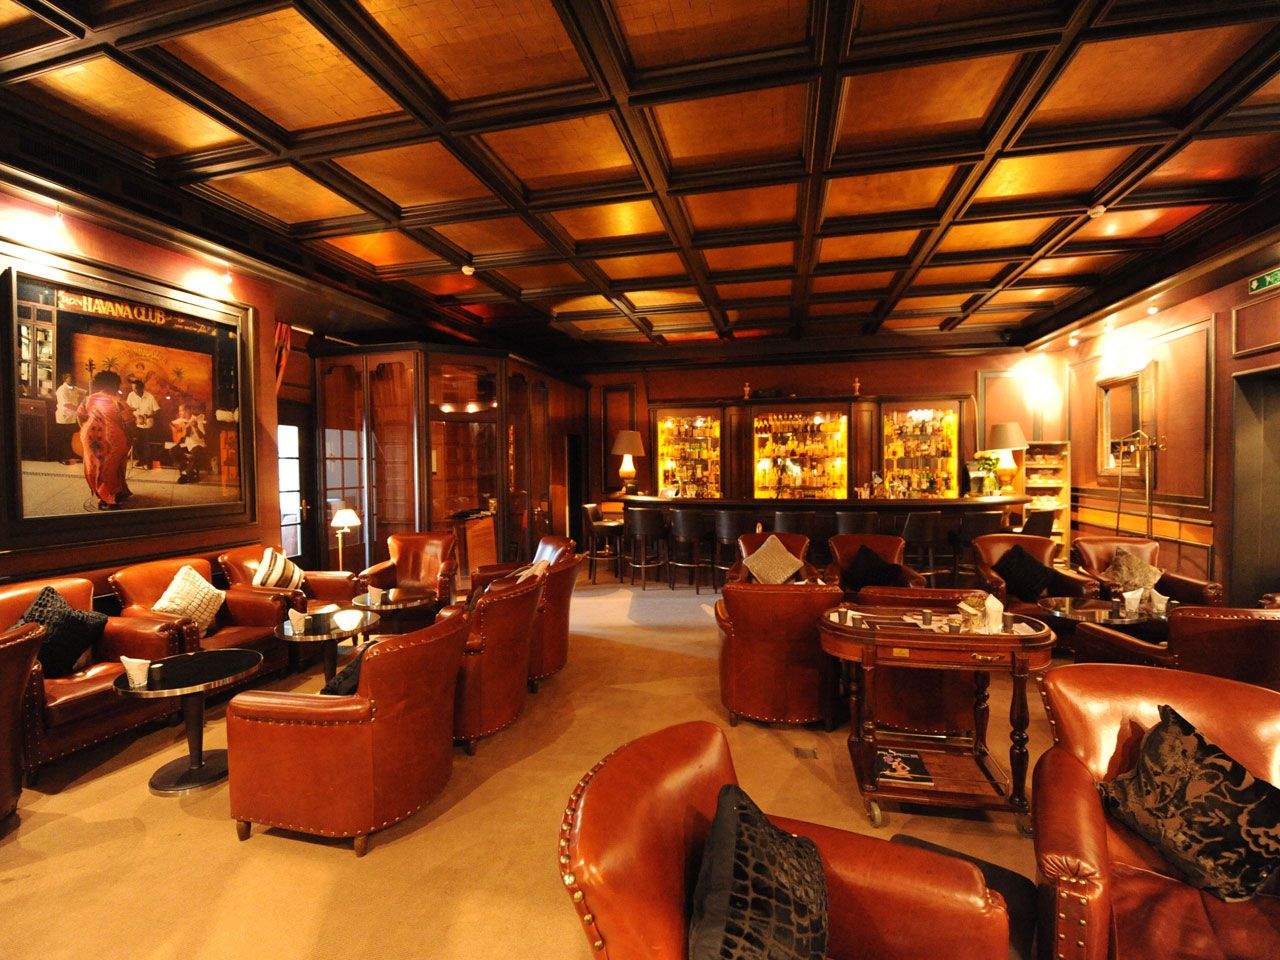 Cigar lounge bar d e n h e r r e k l u b b pinterest for Lounge decor ideas pictures